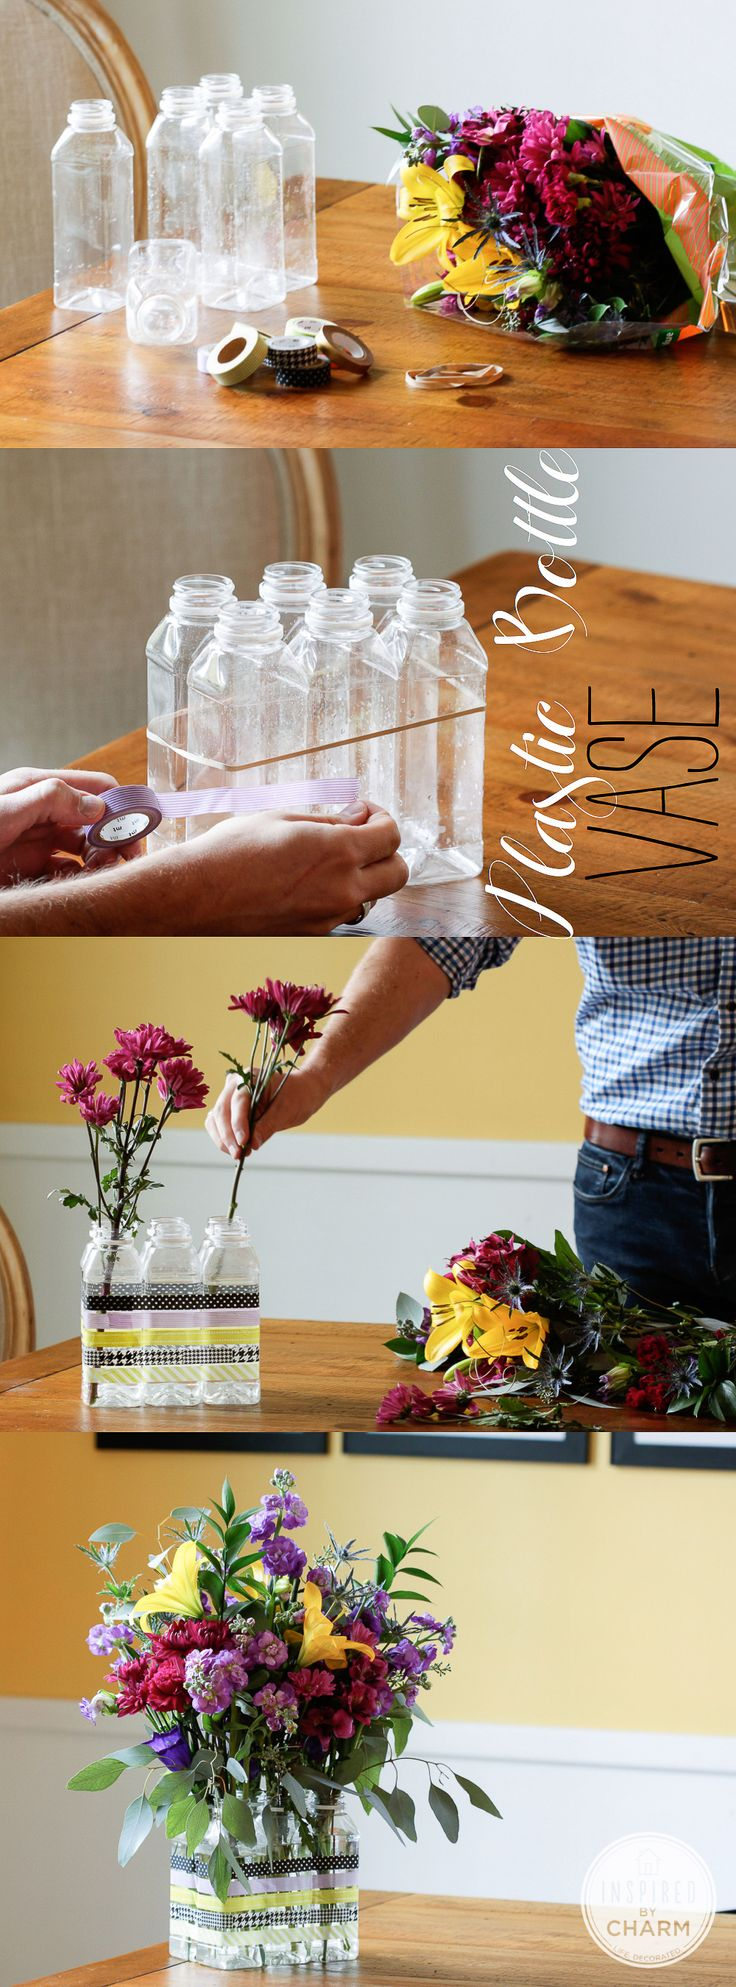 Make a no-cost vase from empty plastic bottles - Buy Nothing New - www.buynothingnew.nl #bnnm13 #ontdekwatjehebt